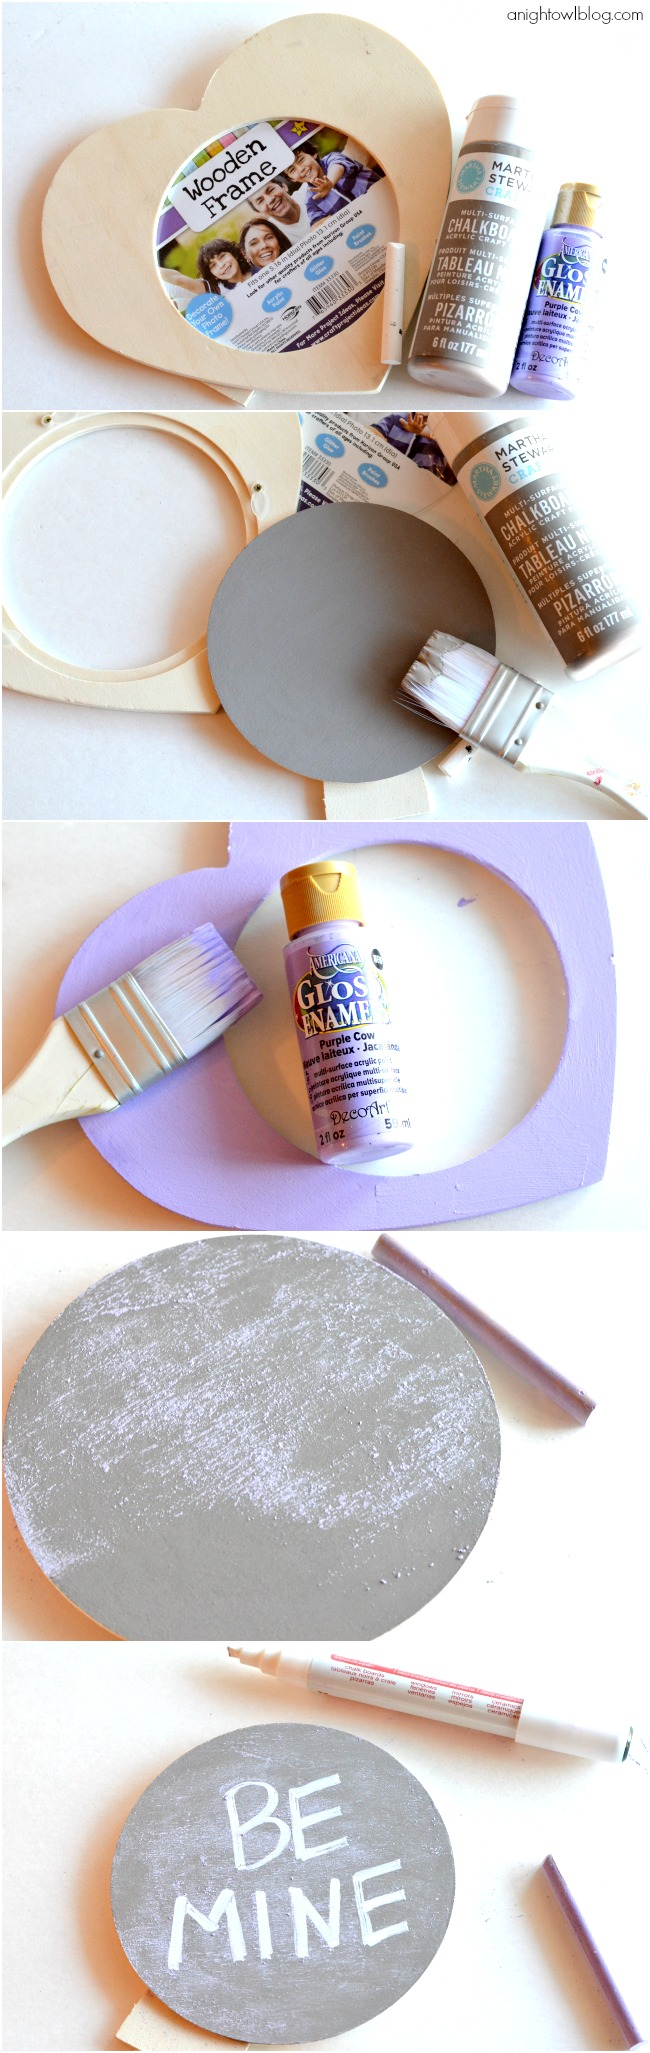 How to make a Conversation Heart Chalkboard